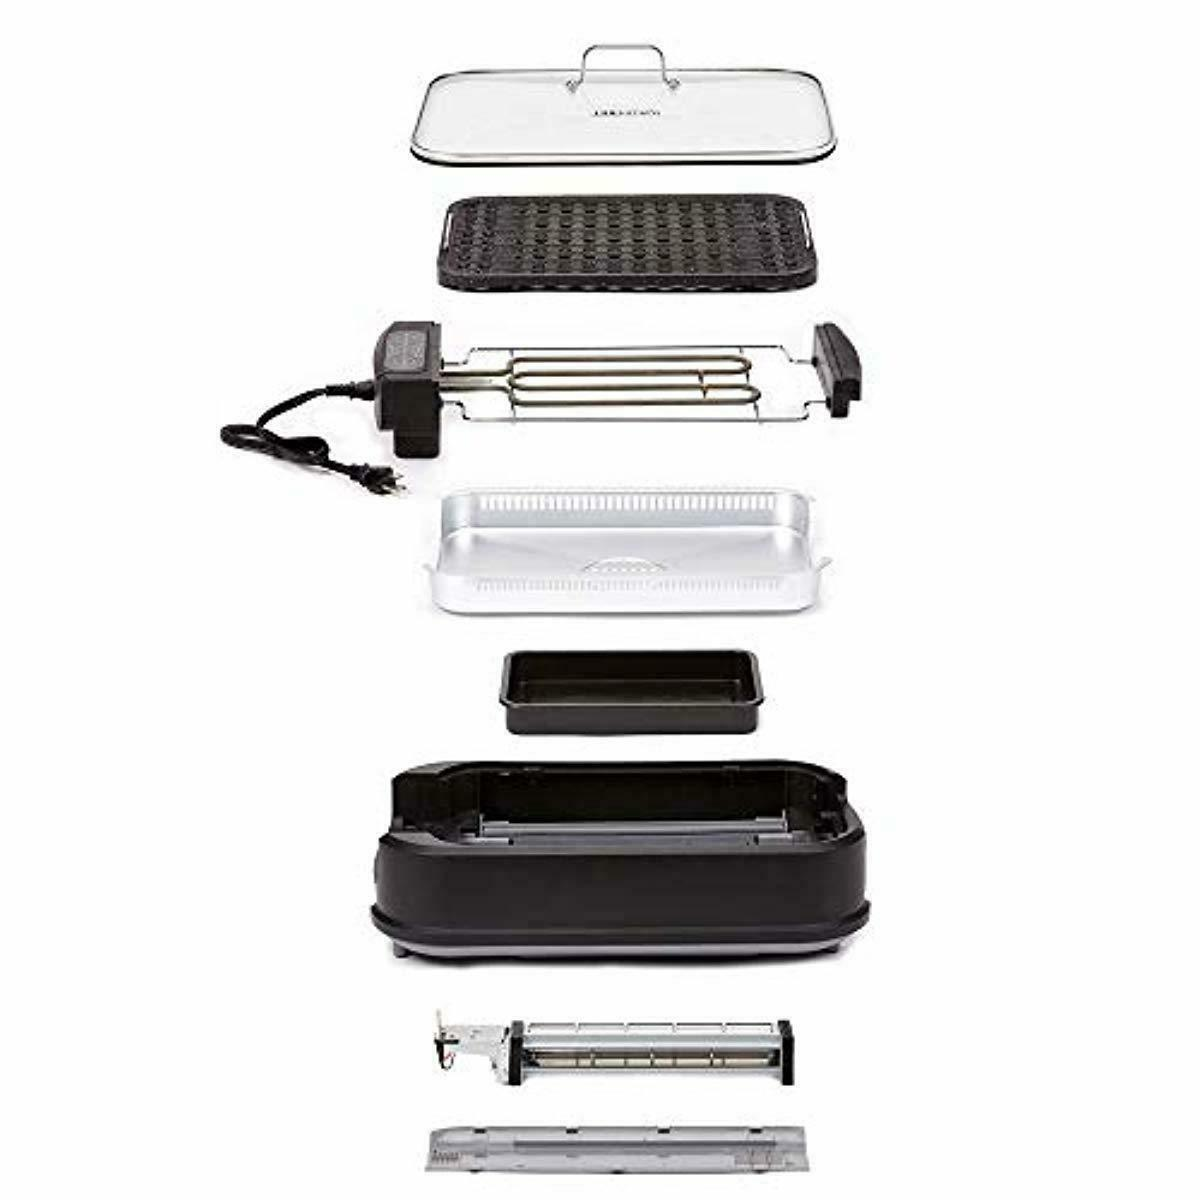 Power Grill Tempered Interchangeable Plate